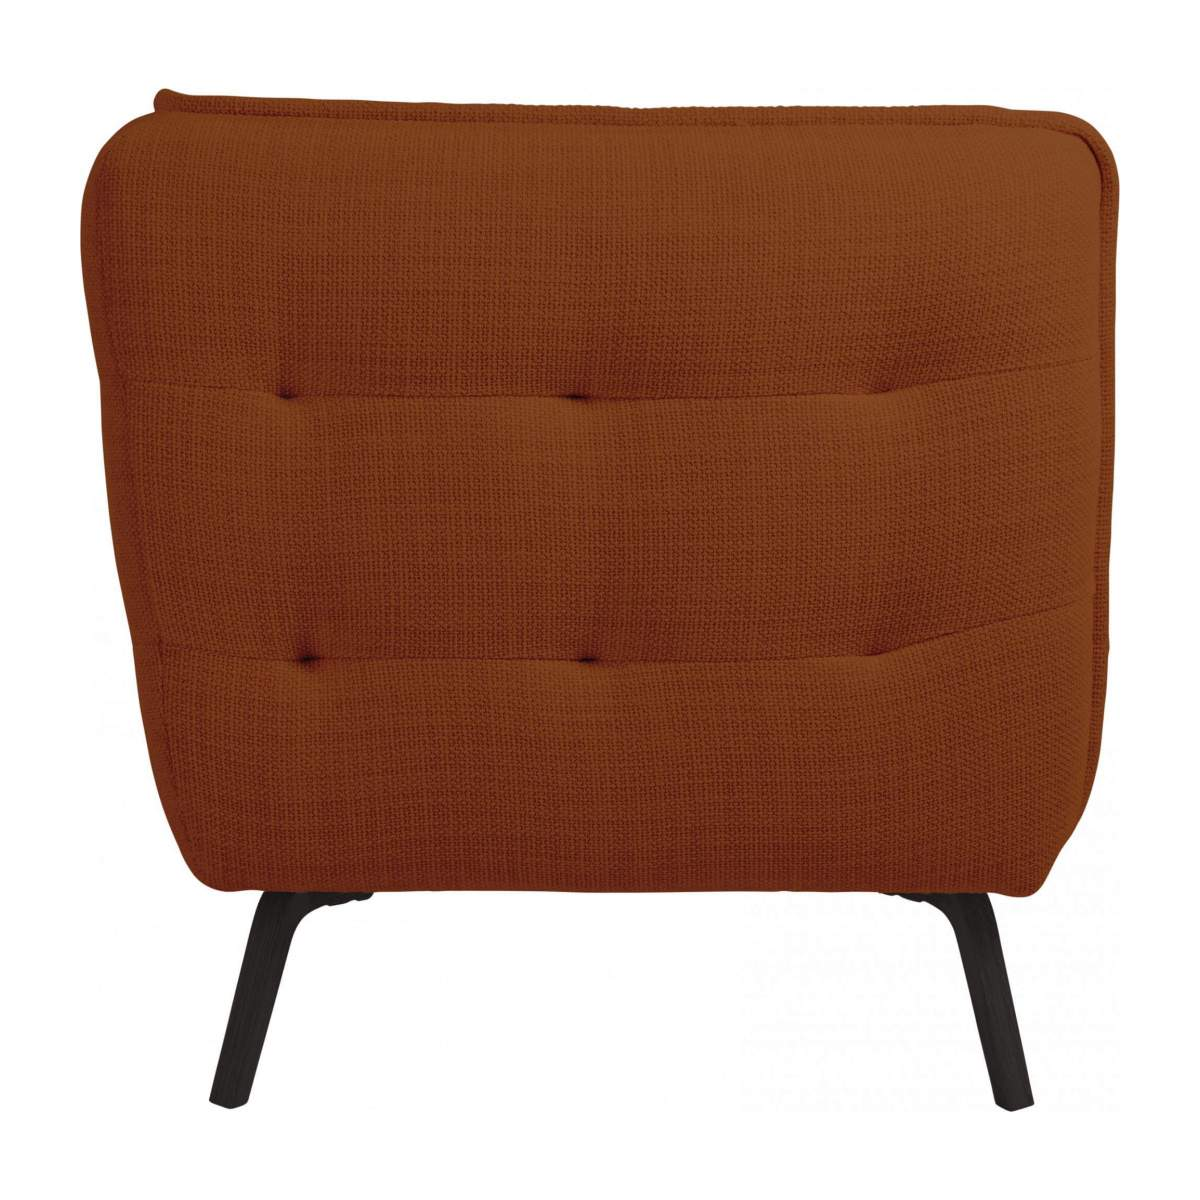 3 seater sofa in Fasoli fabric, warm red rock and dark legs n°4